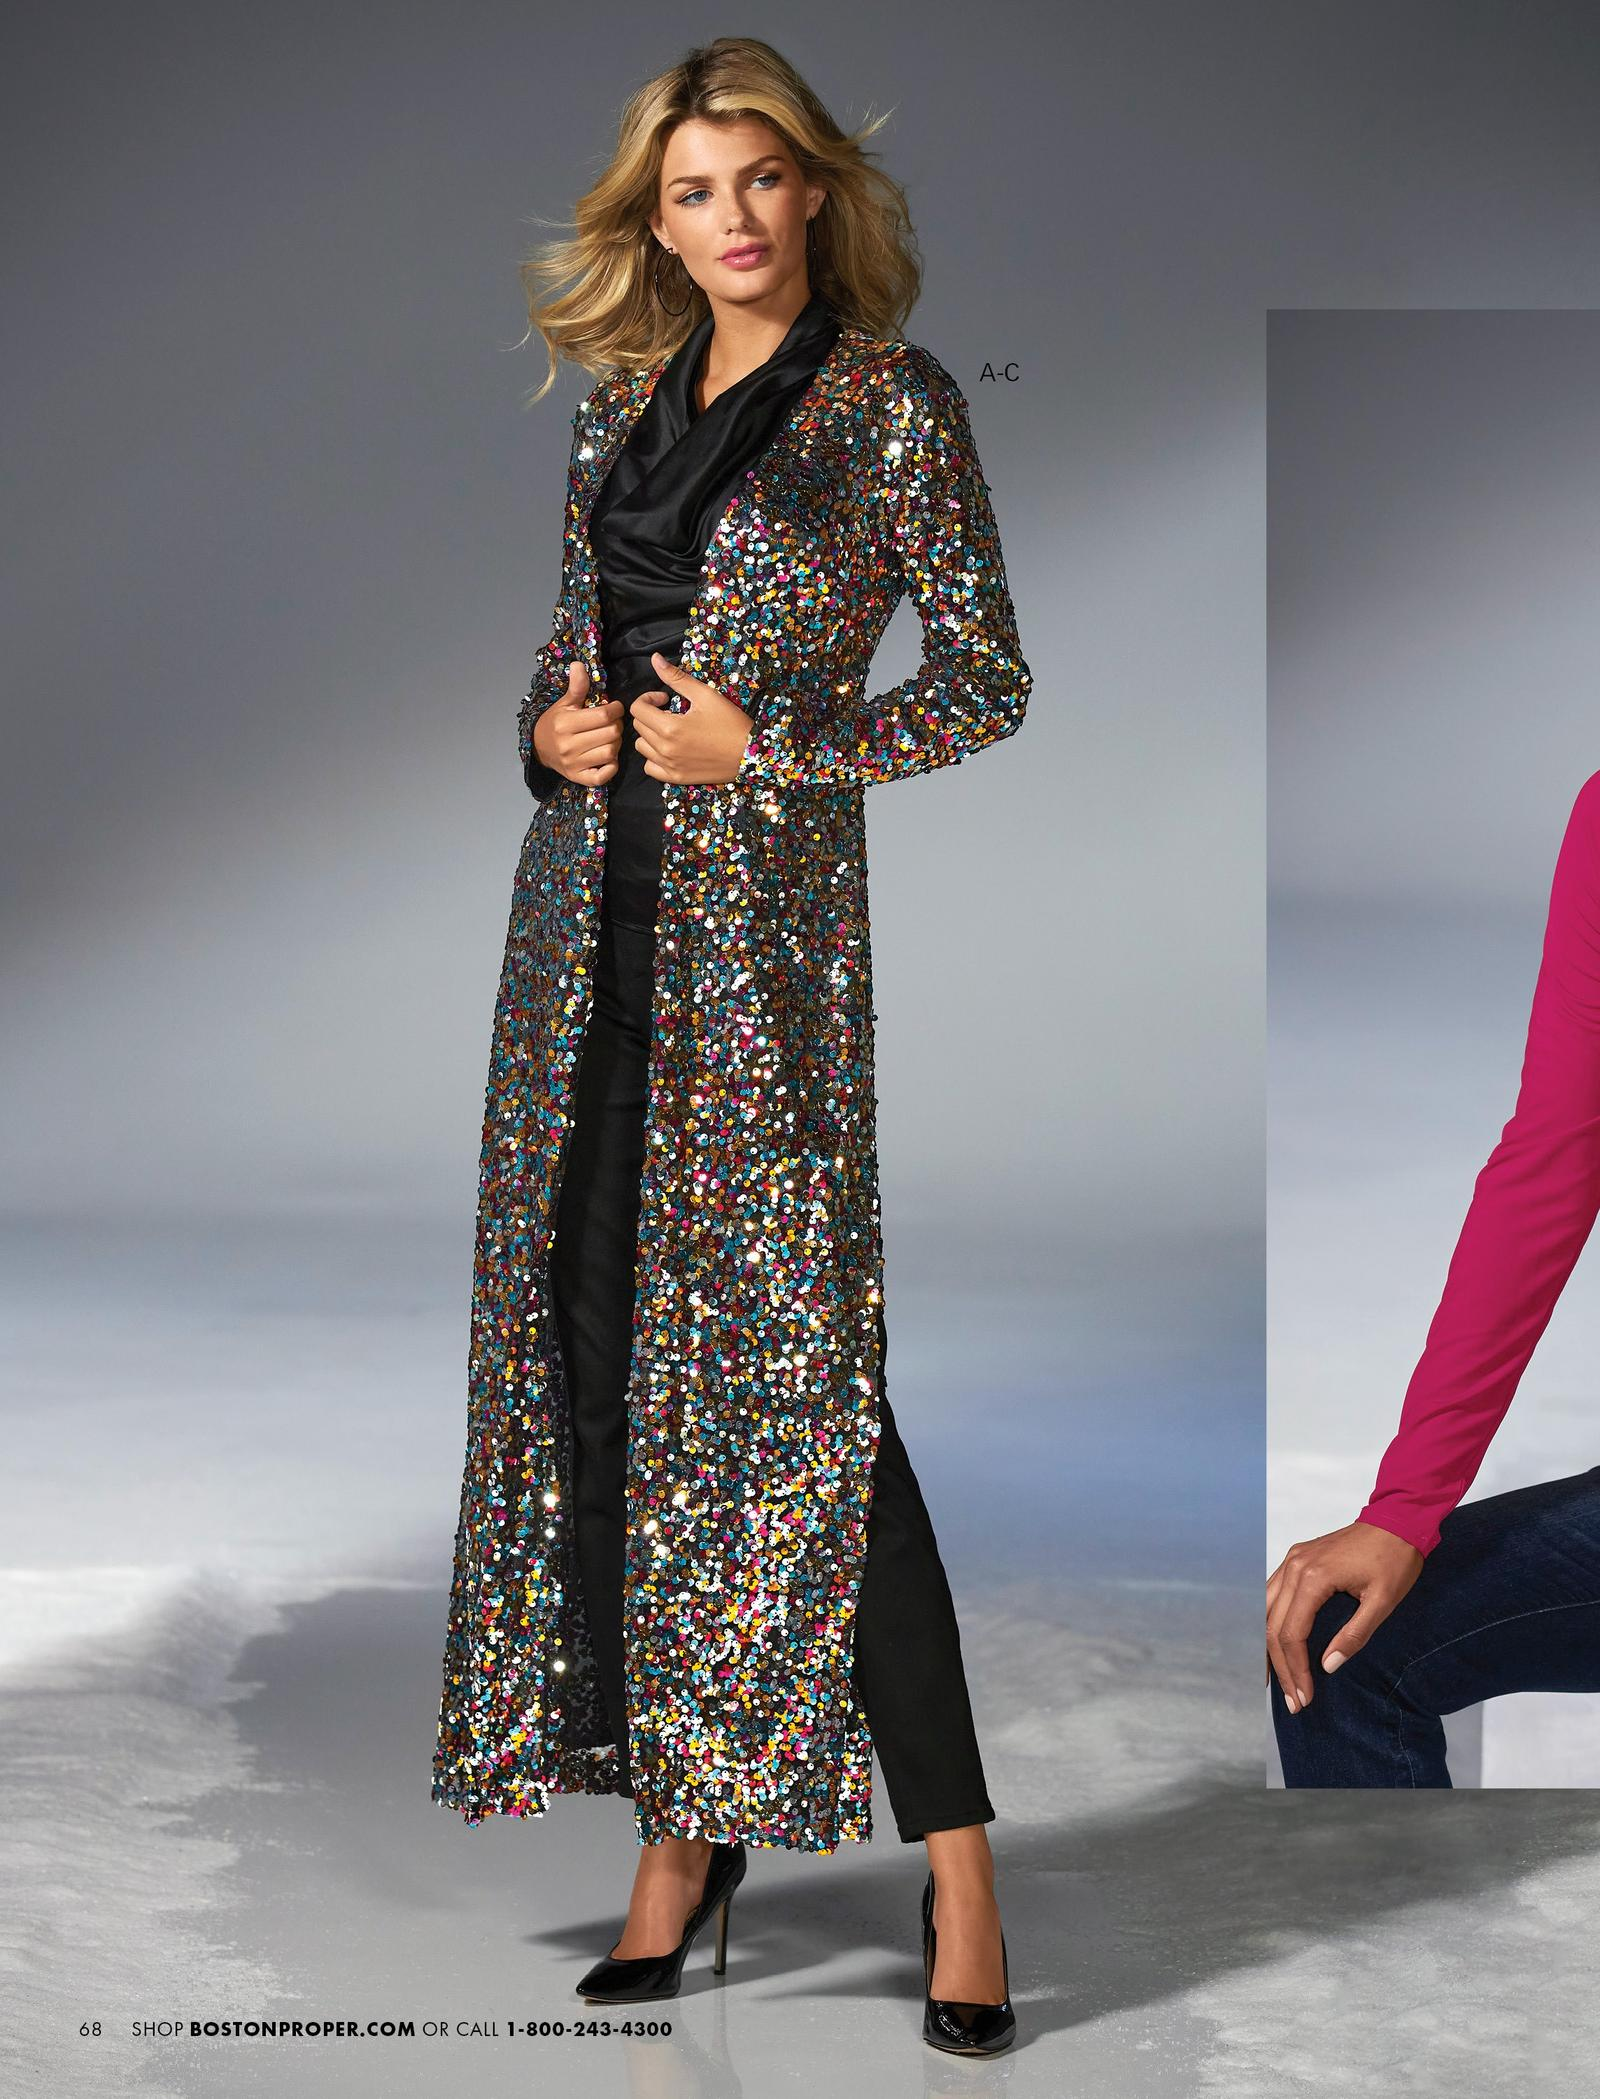 model wearing a multicolored sequin long duster, black cowl neck top, and black jeans.